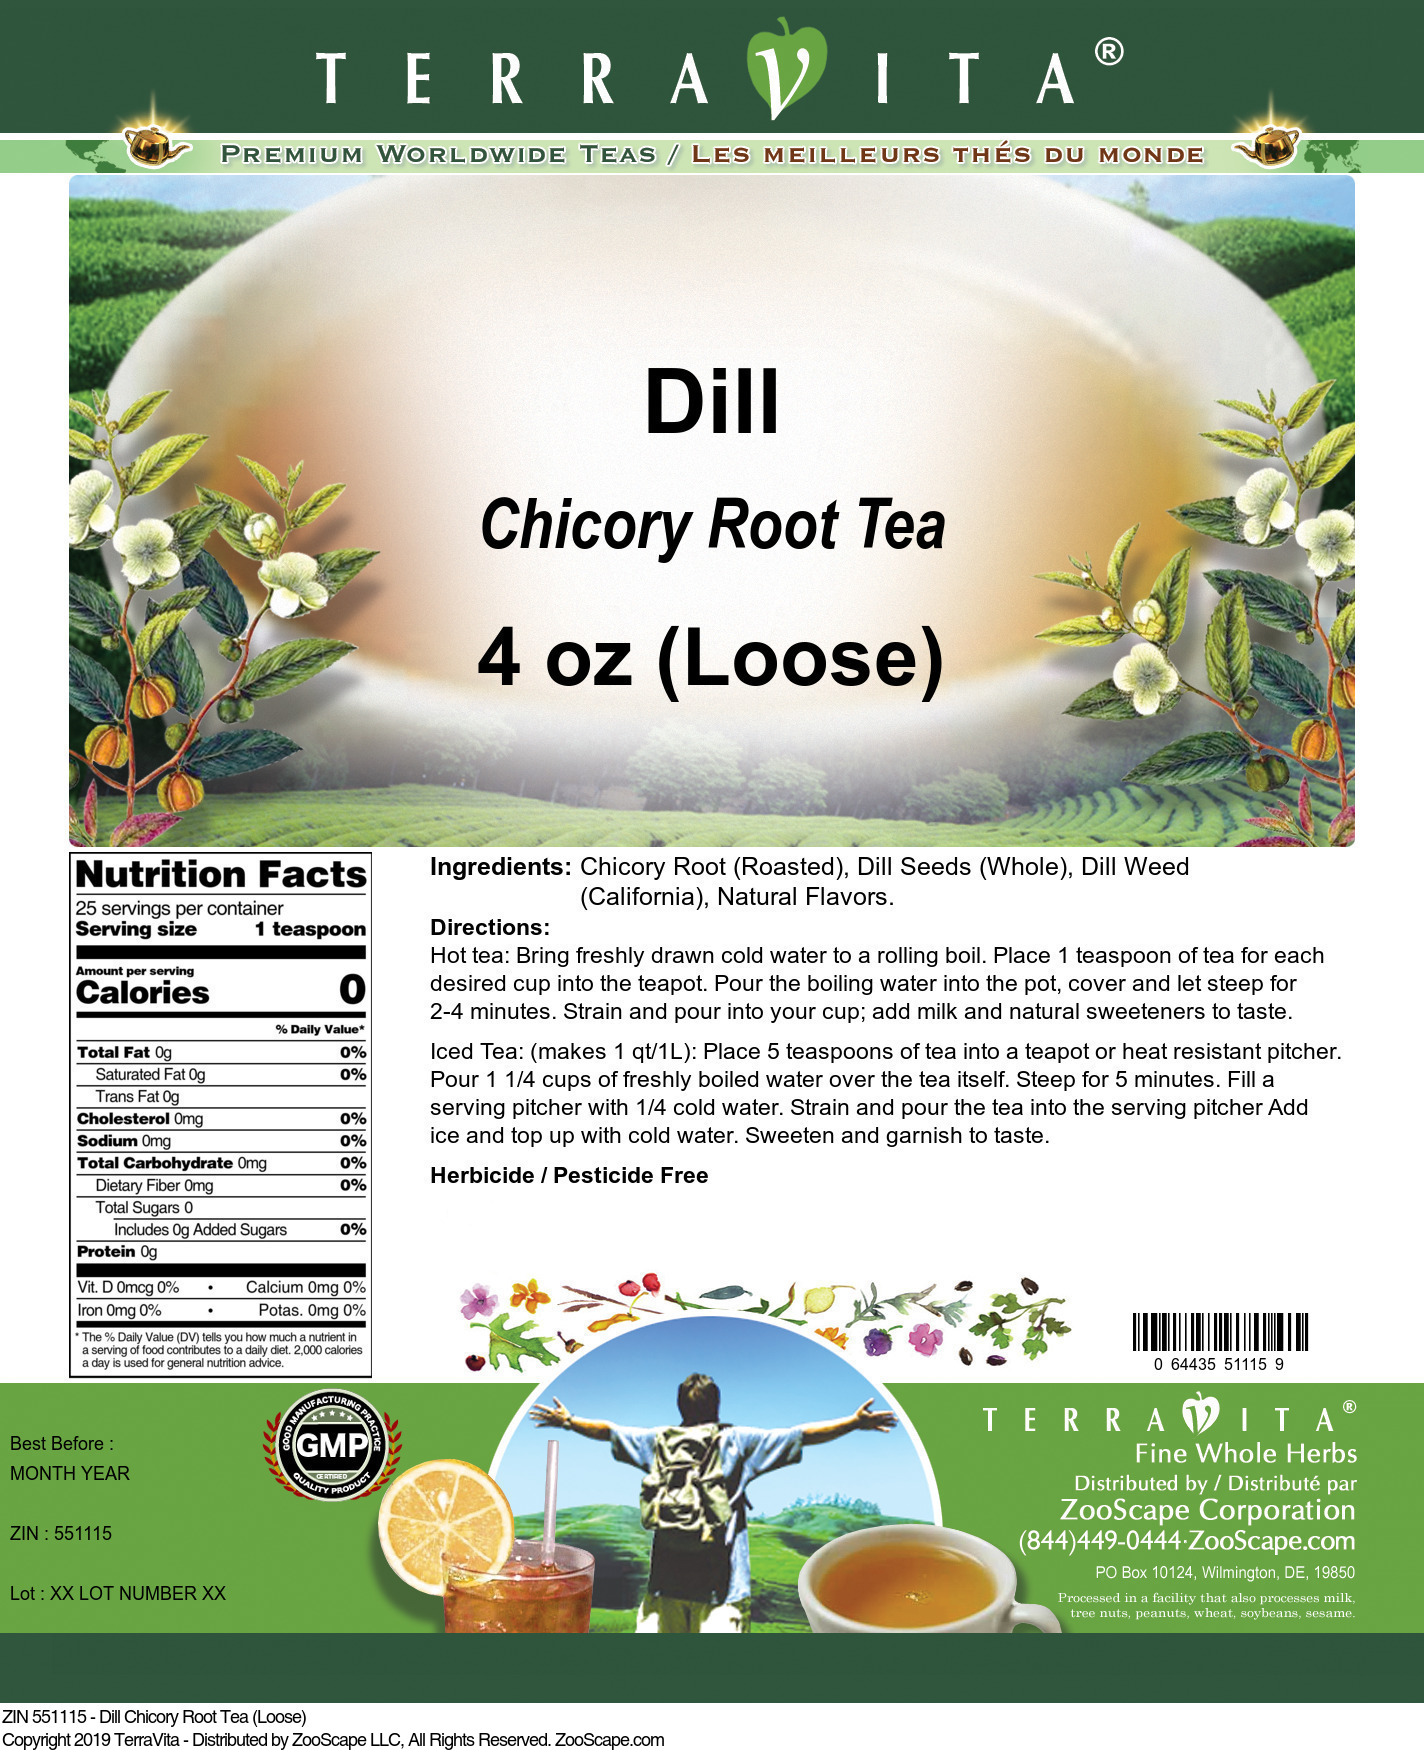 Dill Chicory Root